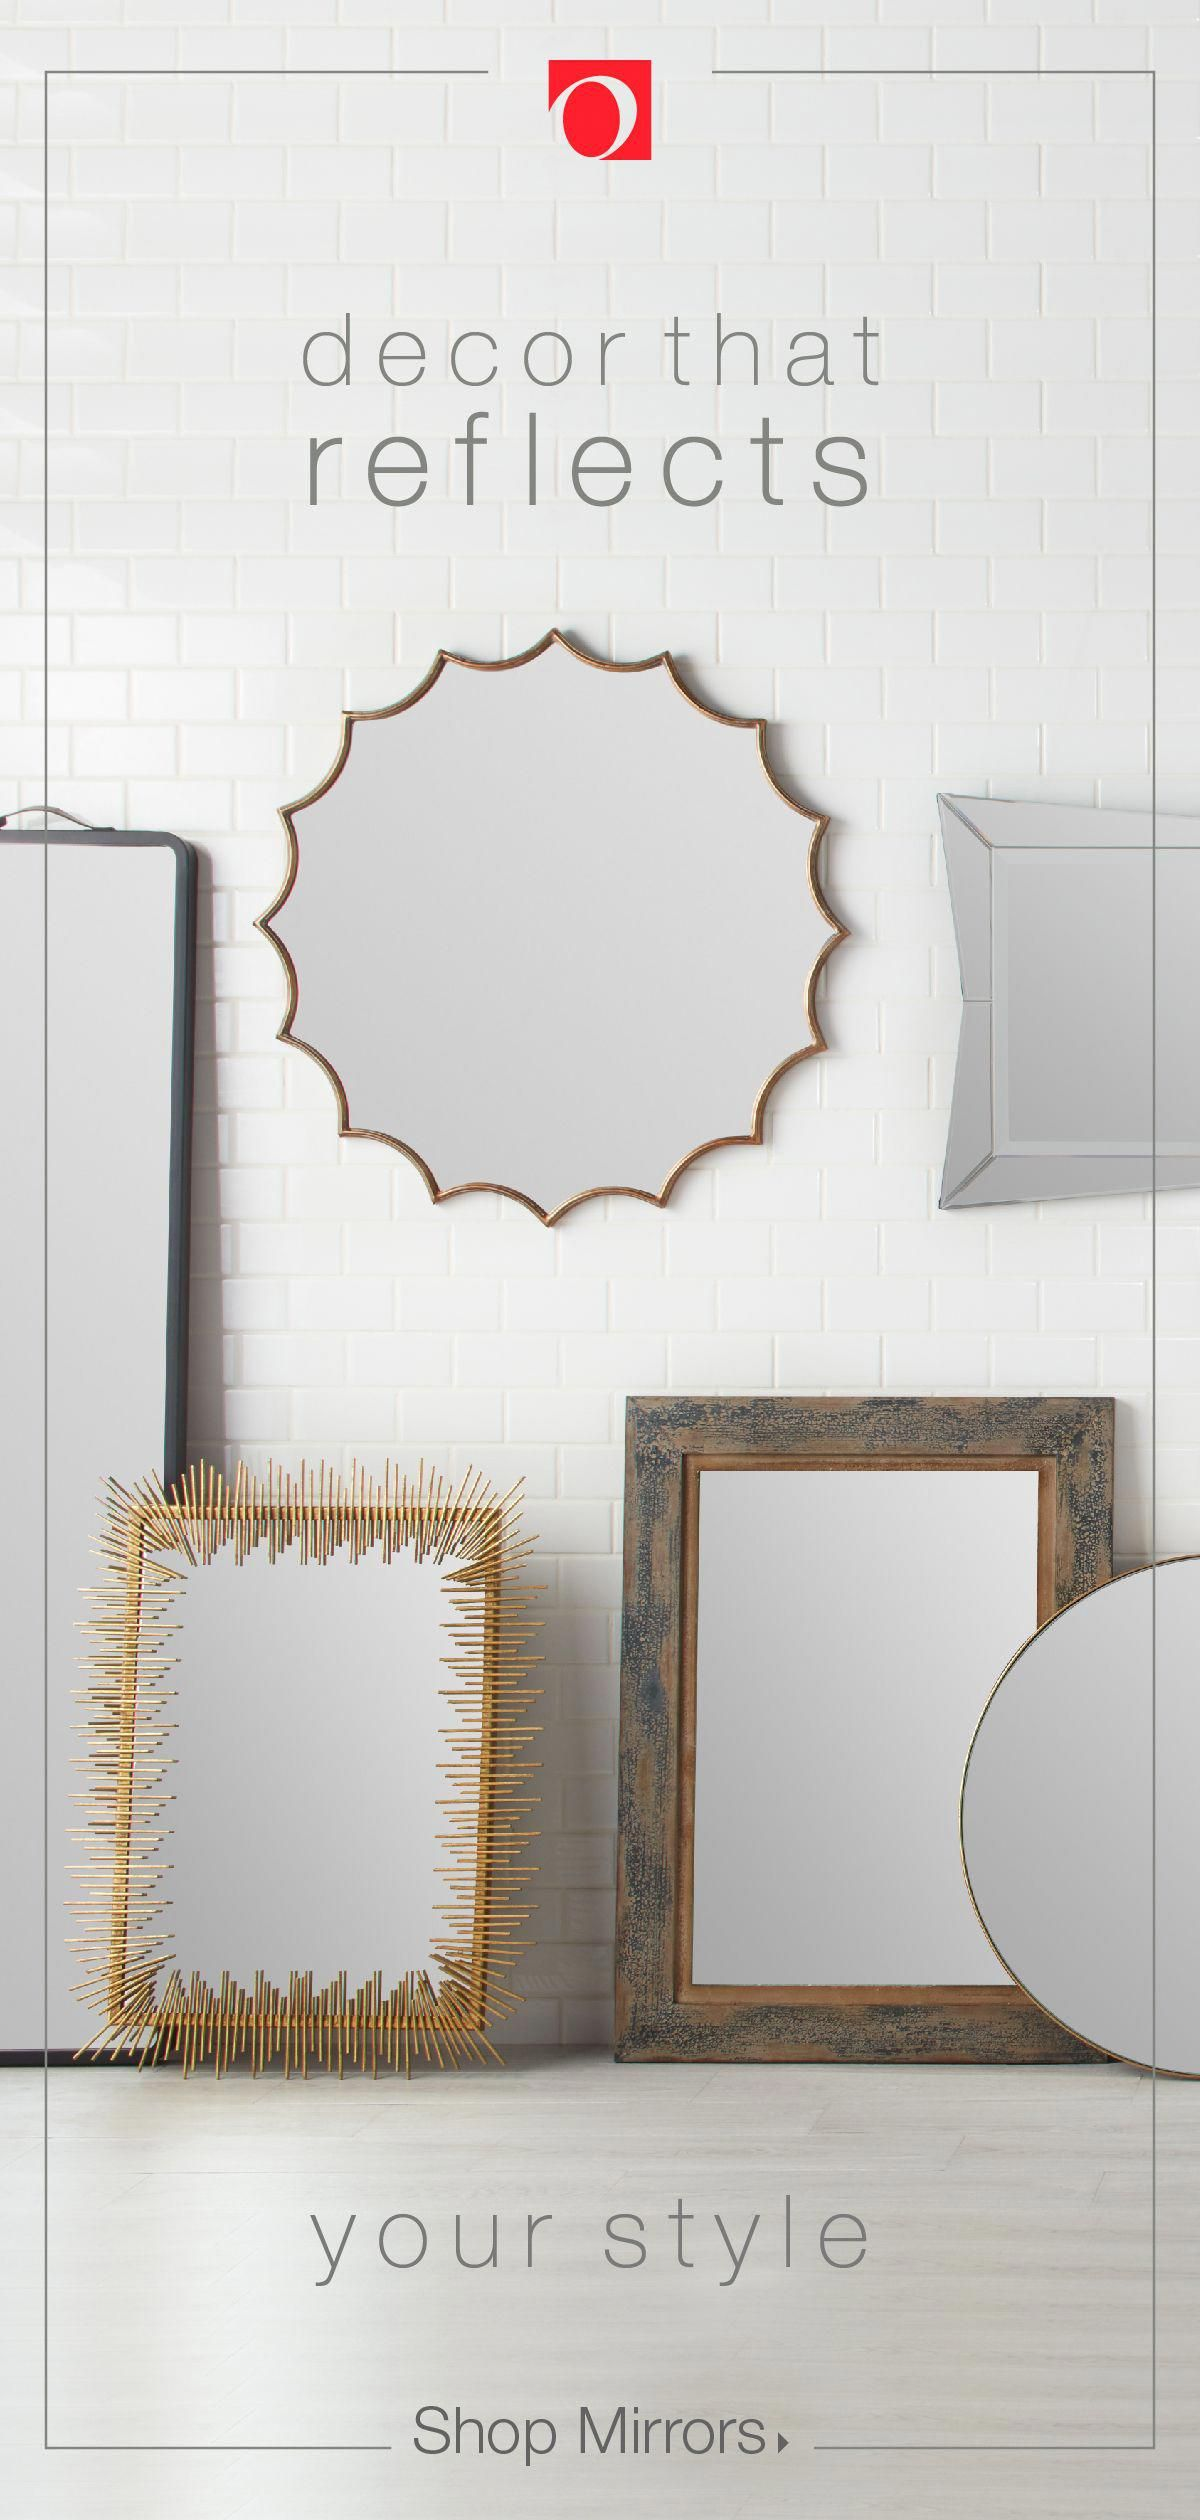 Decorative Mirrors Make Great Additions To Any Room In Your Home